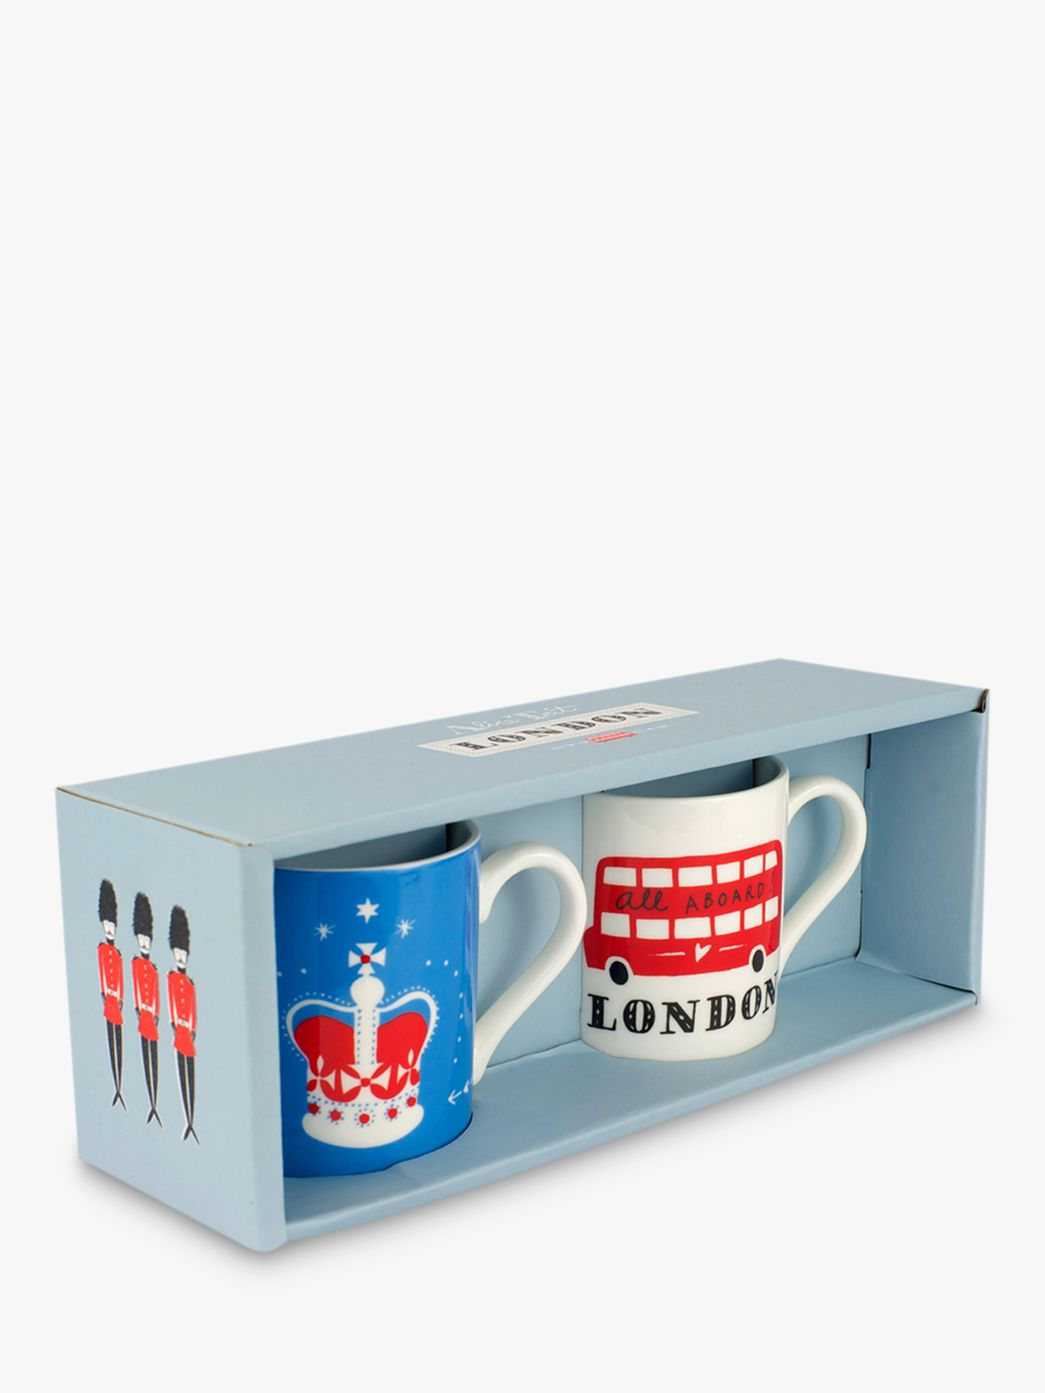 Alice Tait Alice Tait London Espresso Set